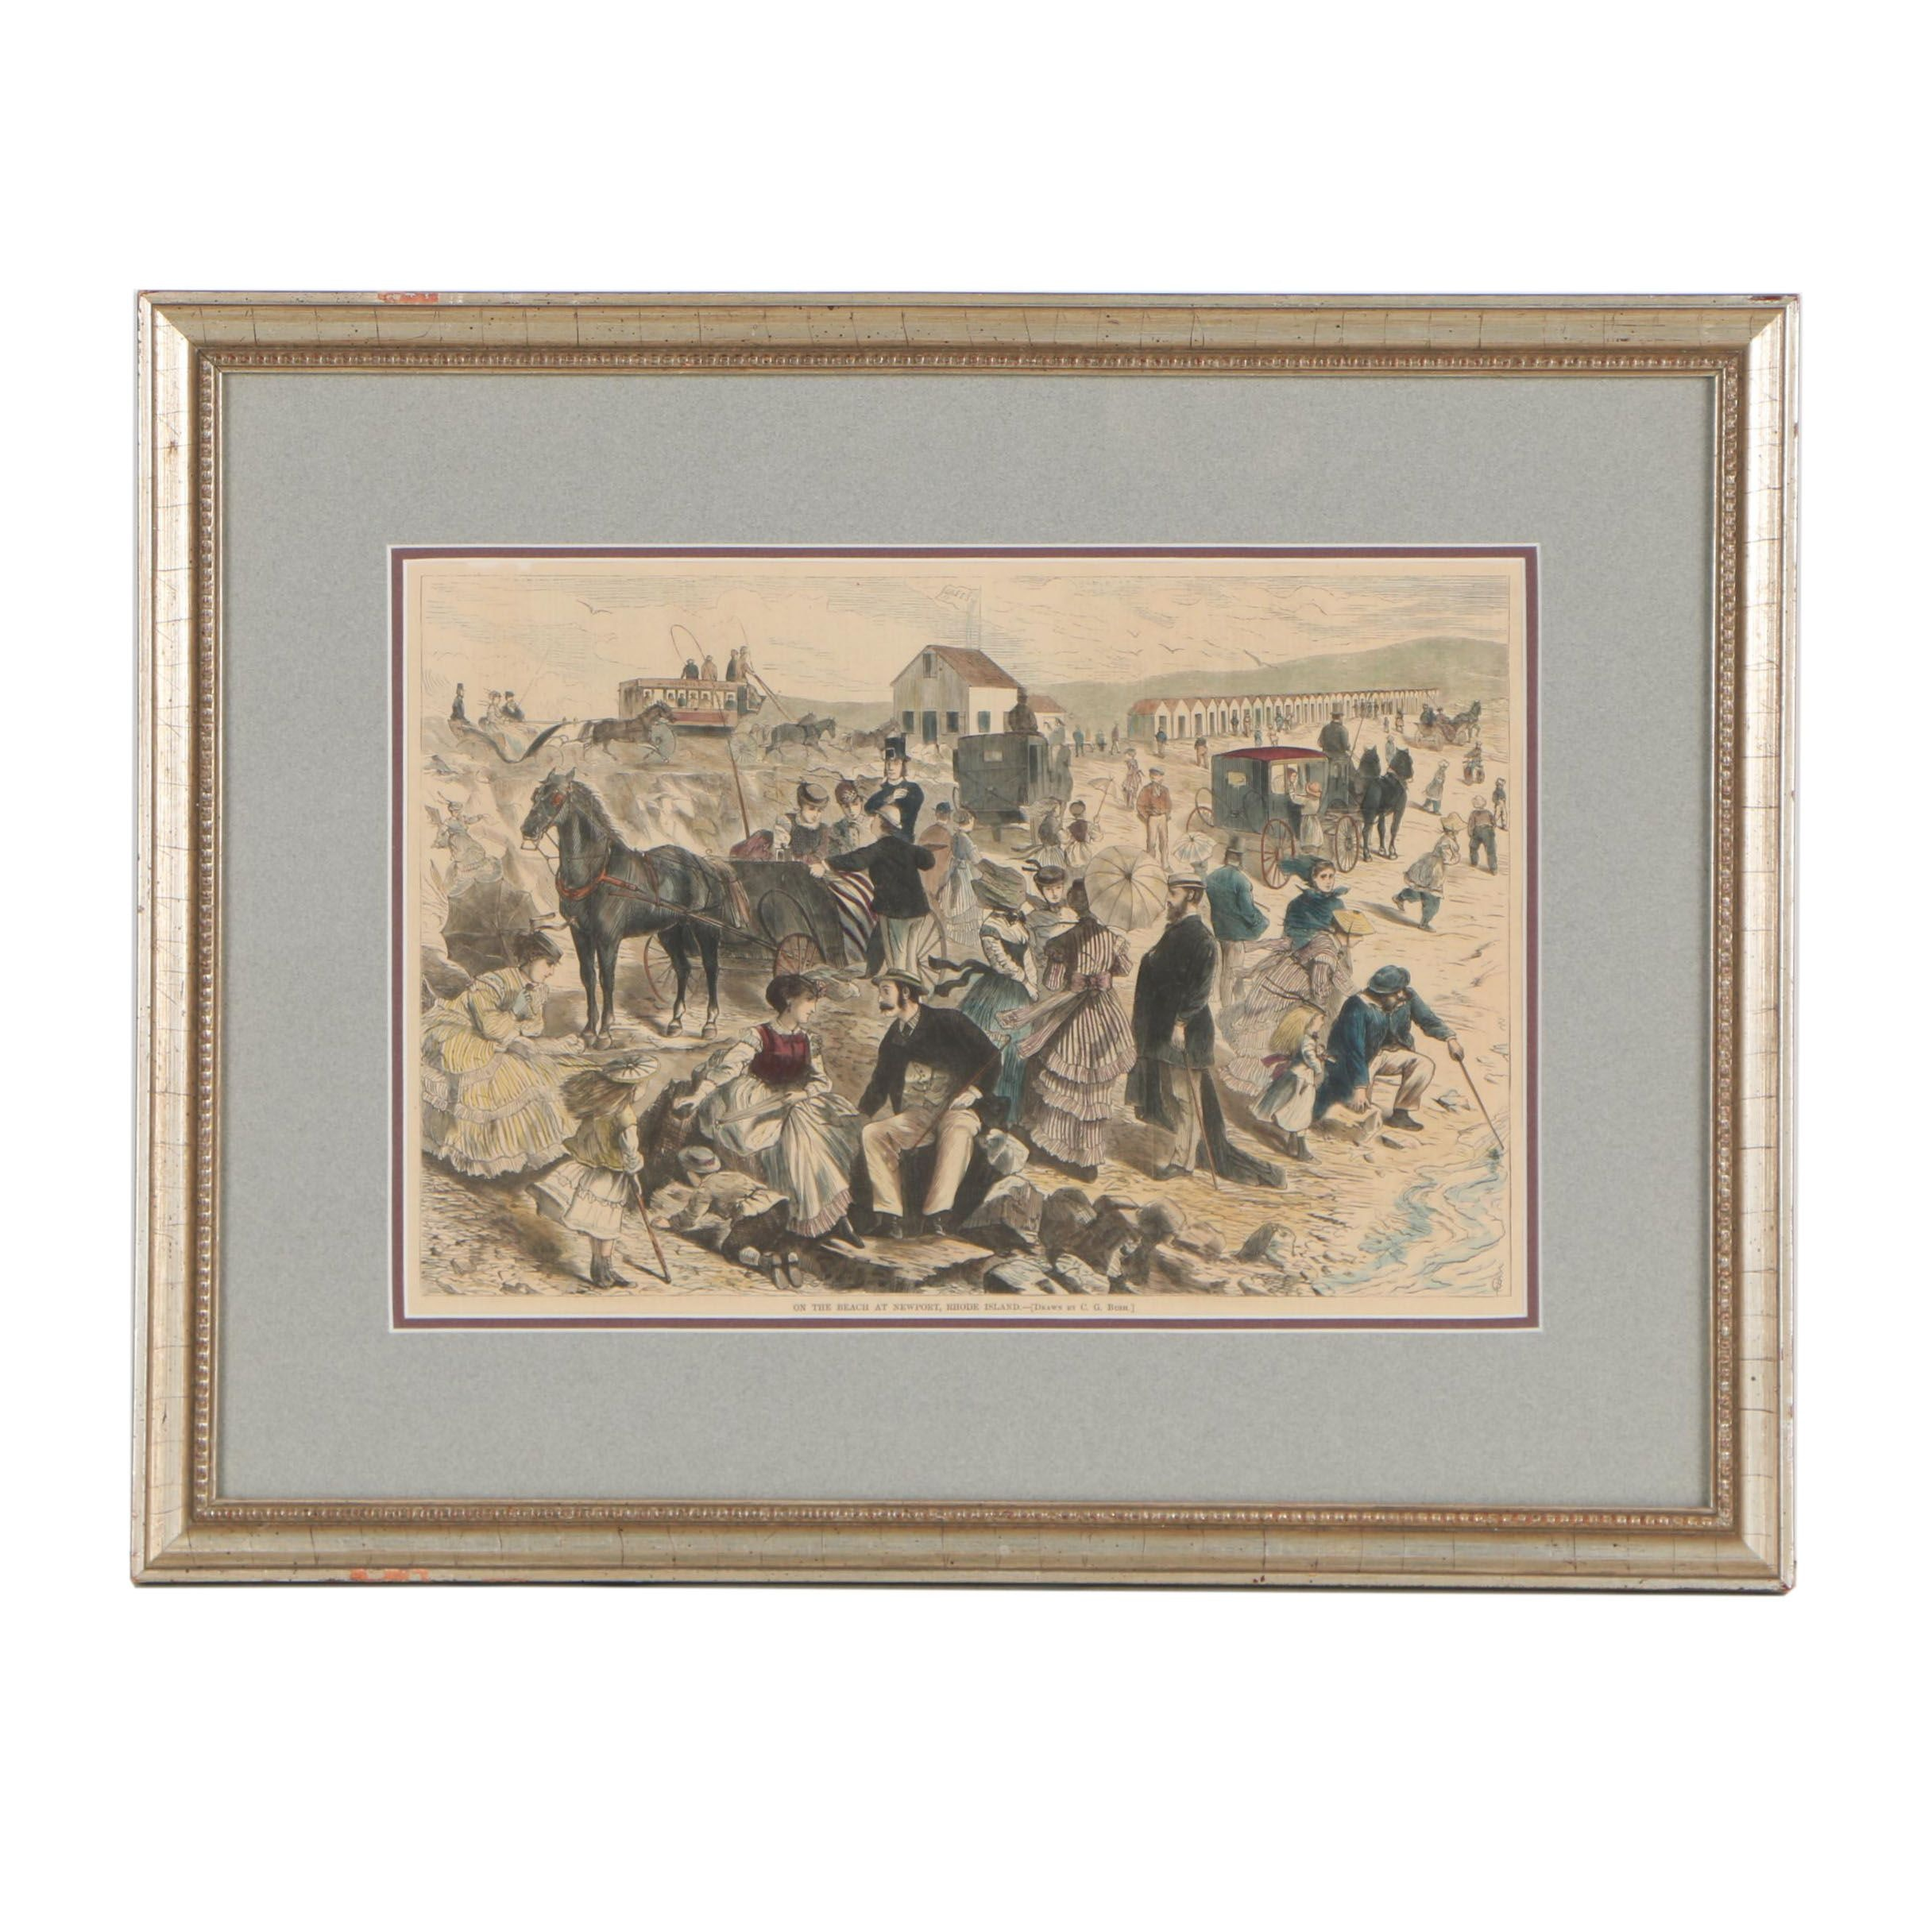 """Wood Engraving after C.G. Bush """"On the Beach at Newport, Rhode Island"""""""